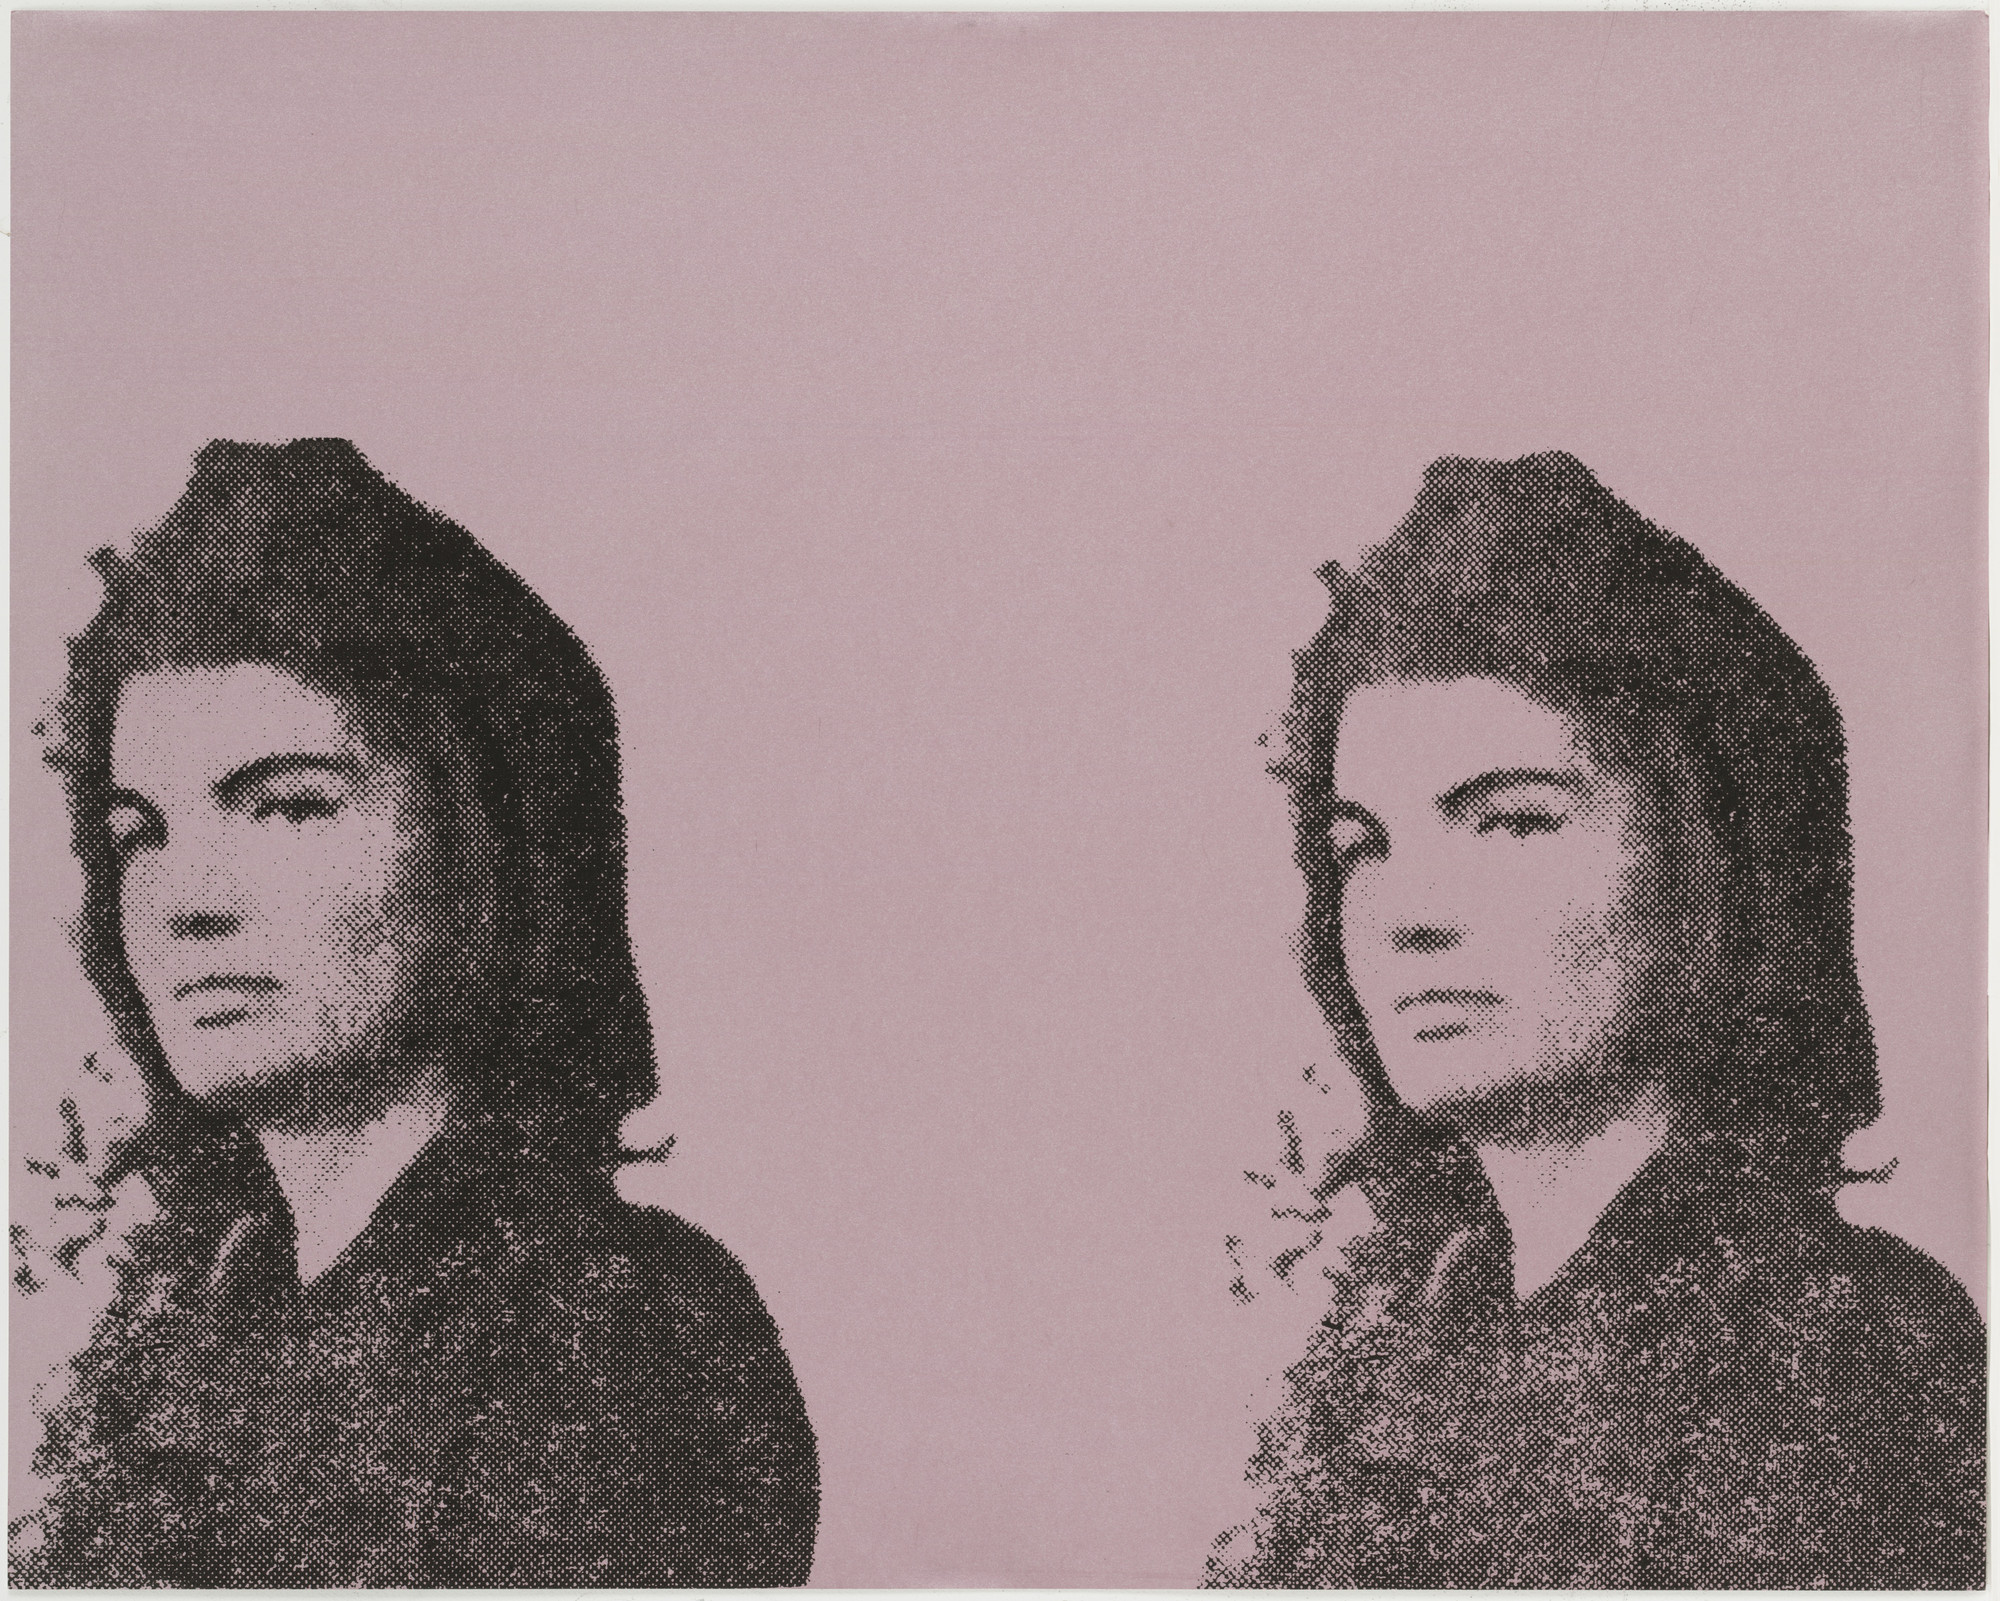 Andy Warhol. Jacqueline Kennedy II from 11 Pop Artists, Volume II. 1965, published 1966